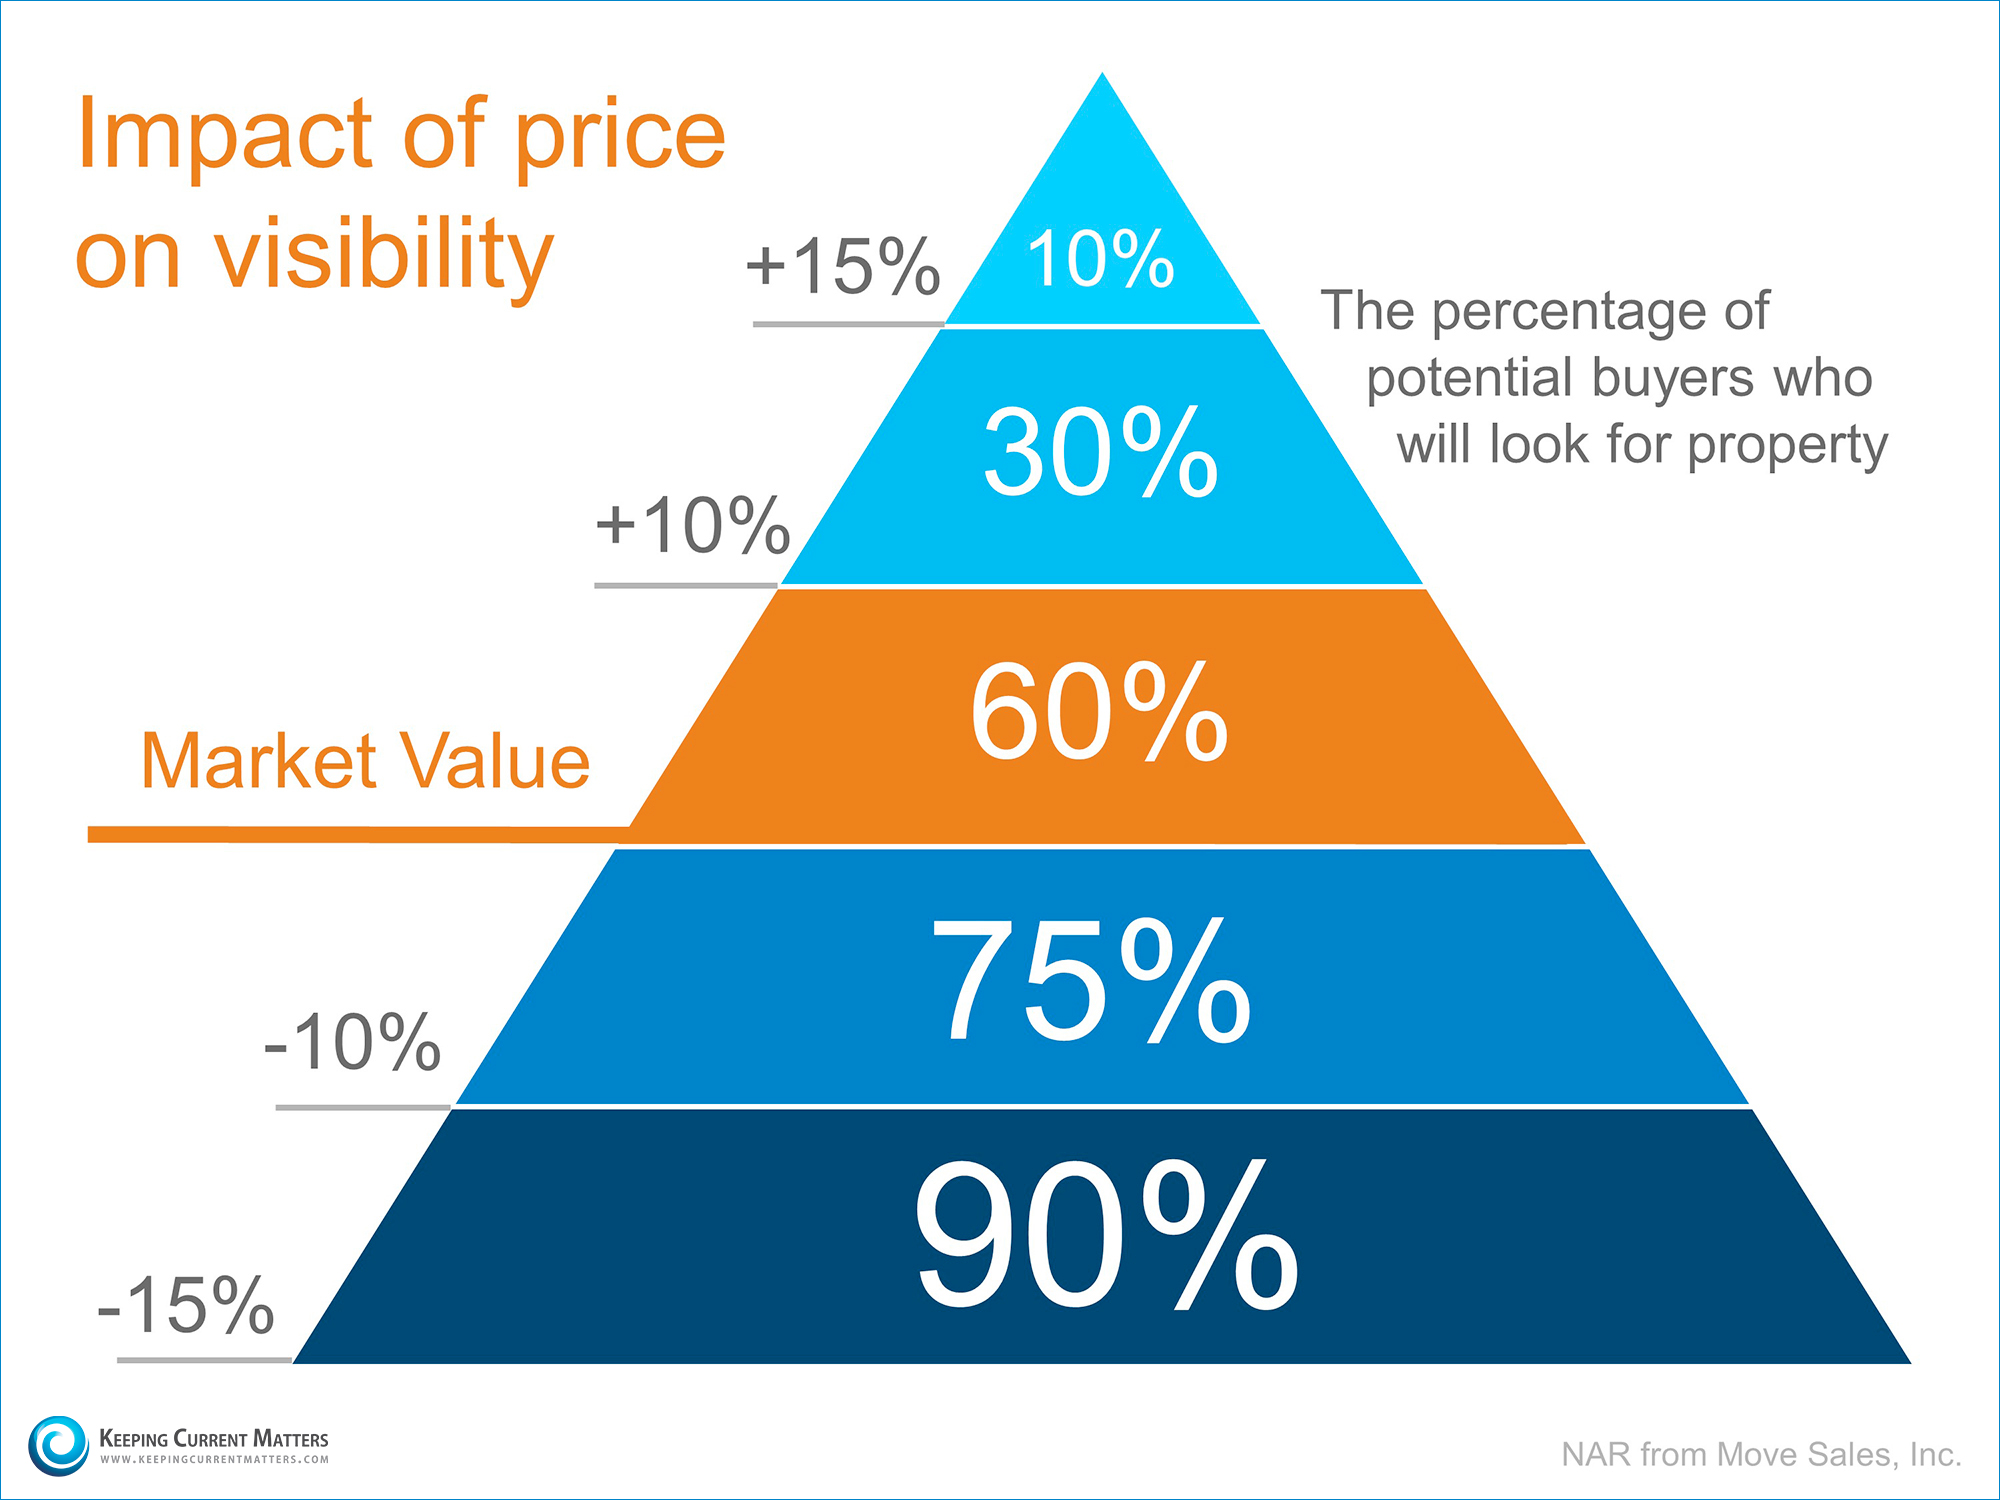 Price-Visibility-KCM